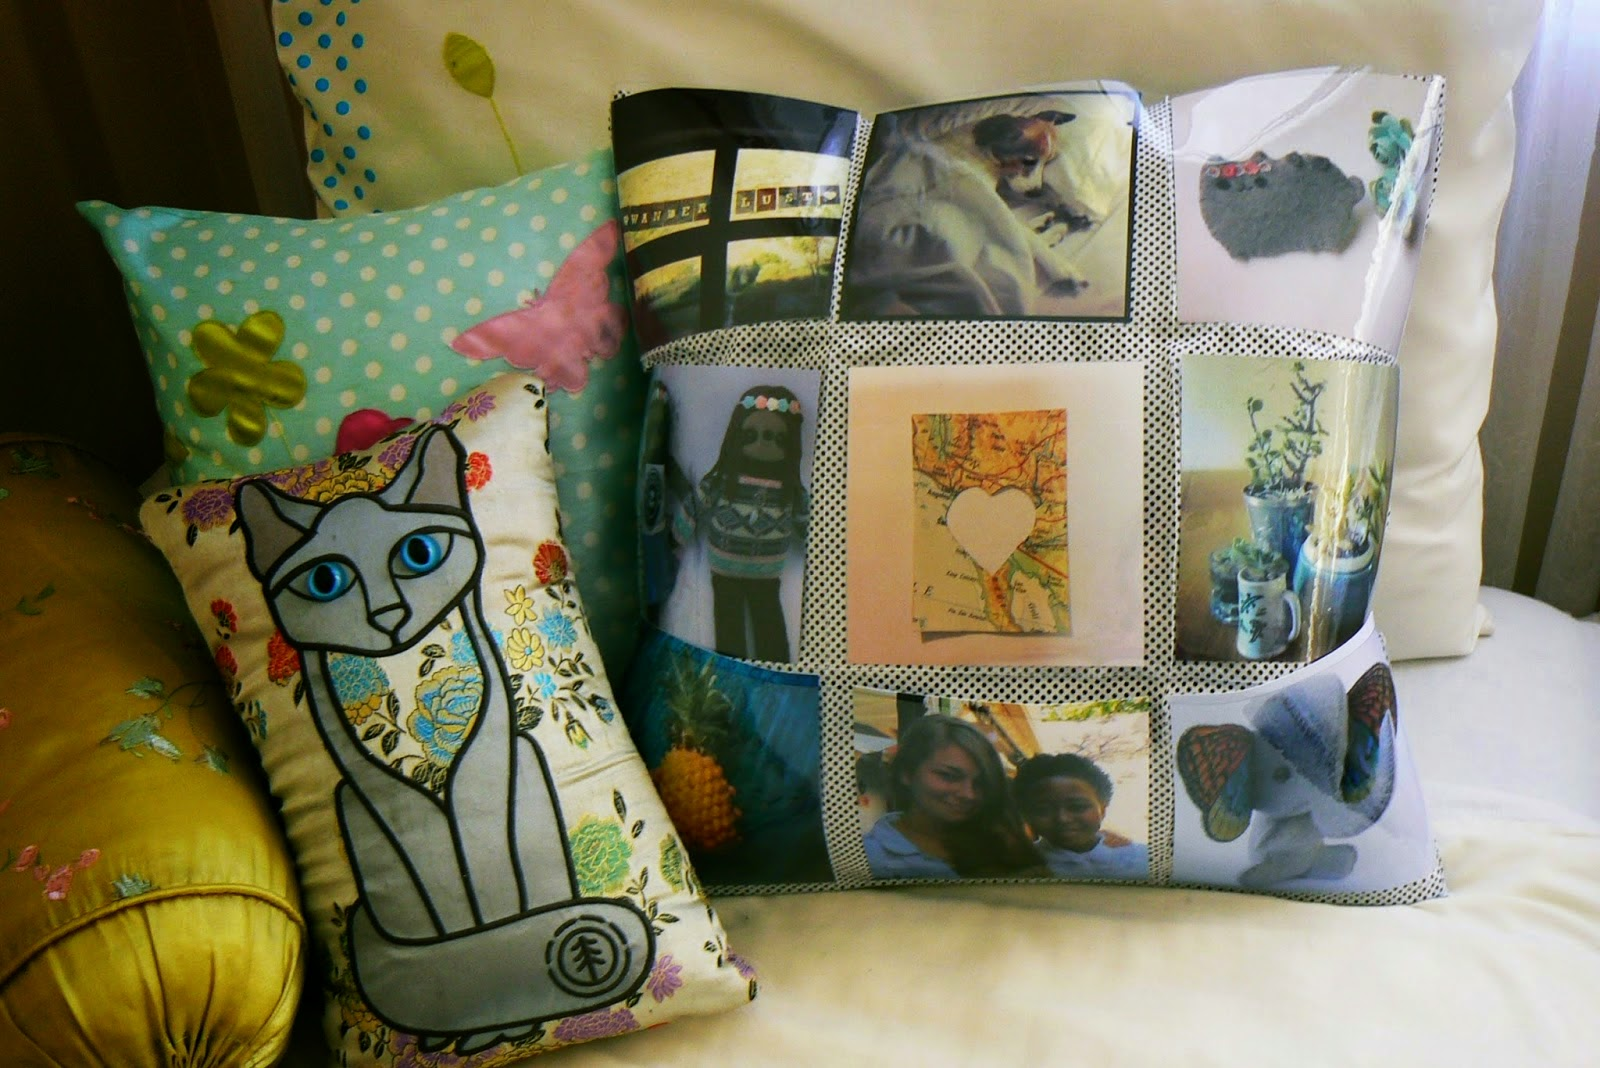 http://ld-p.blogspot.com/2014/08/diy-photo-pocket-cushion.html